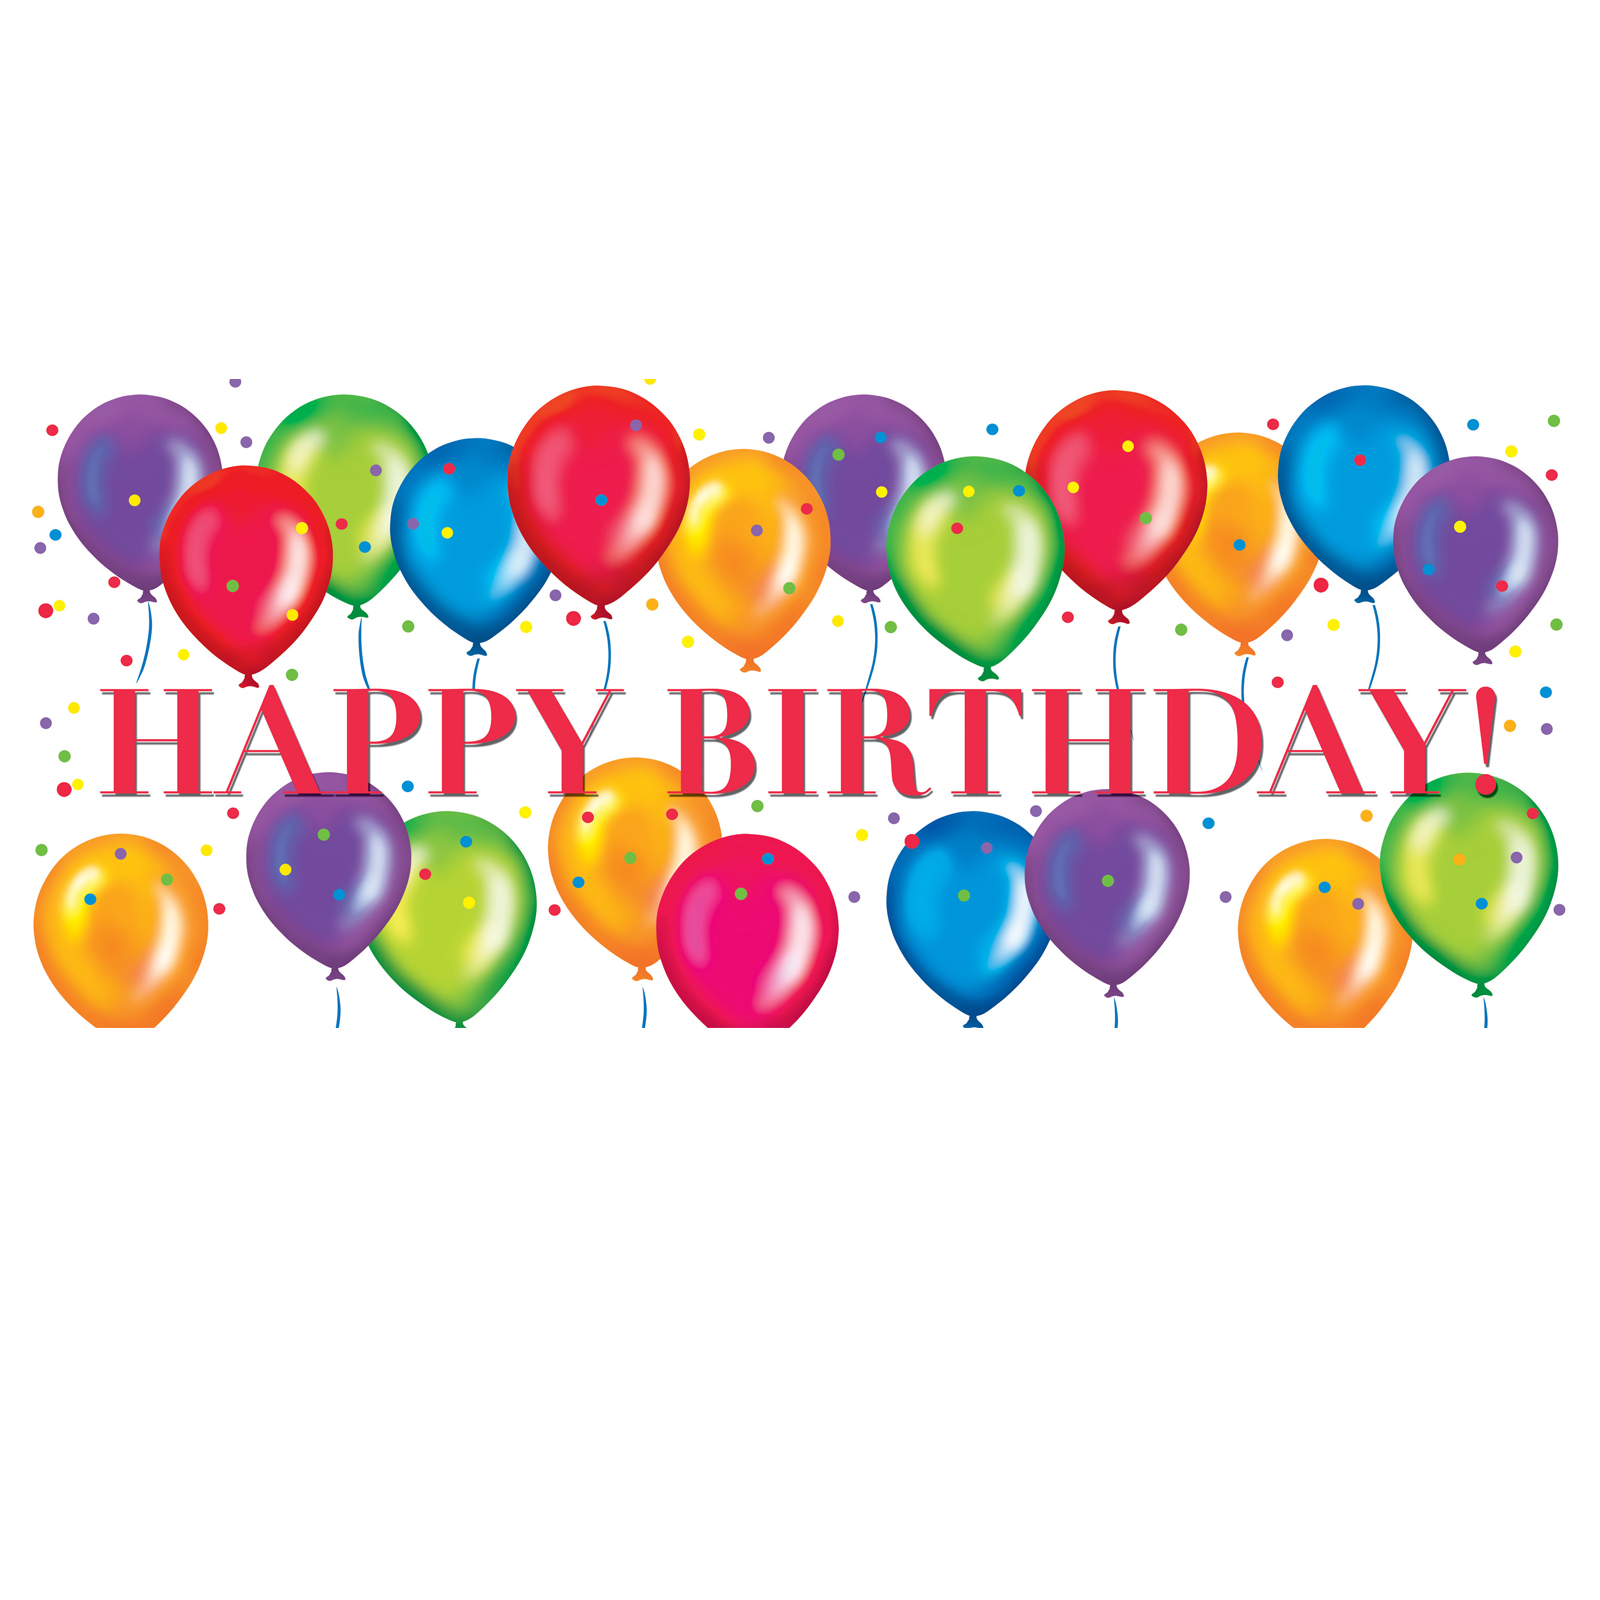 Free Belated Birthday Cliparts, Download Free Clip Art, Free.